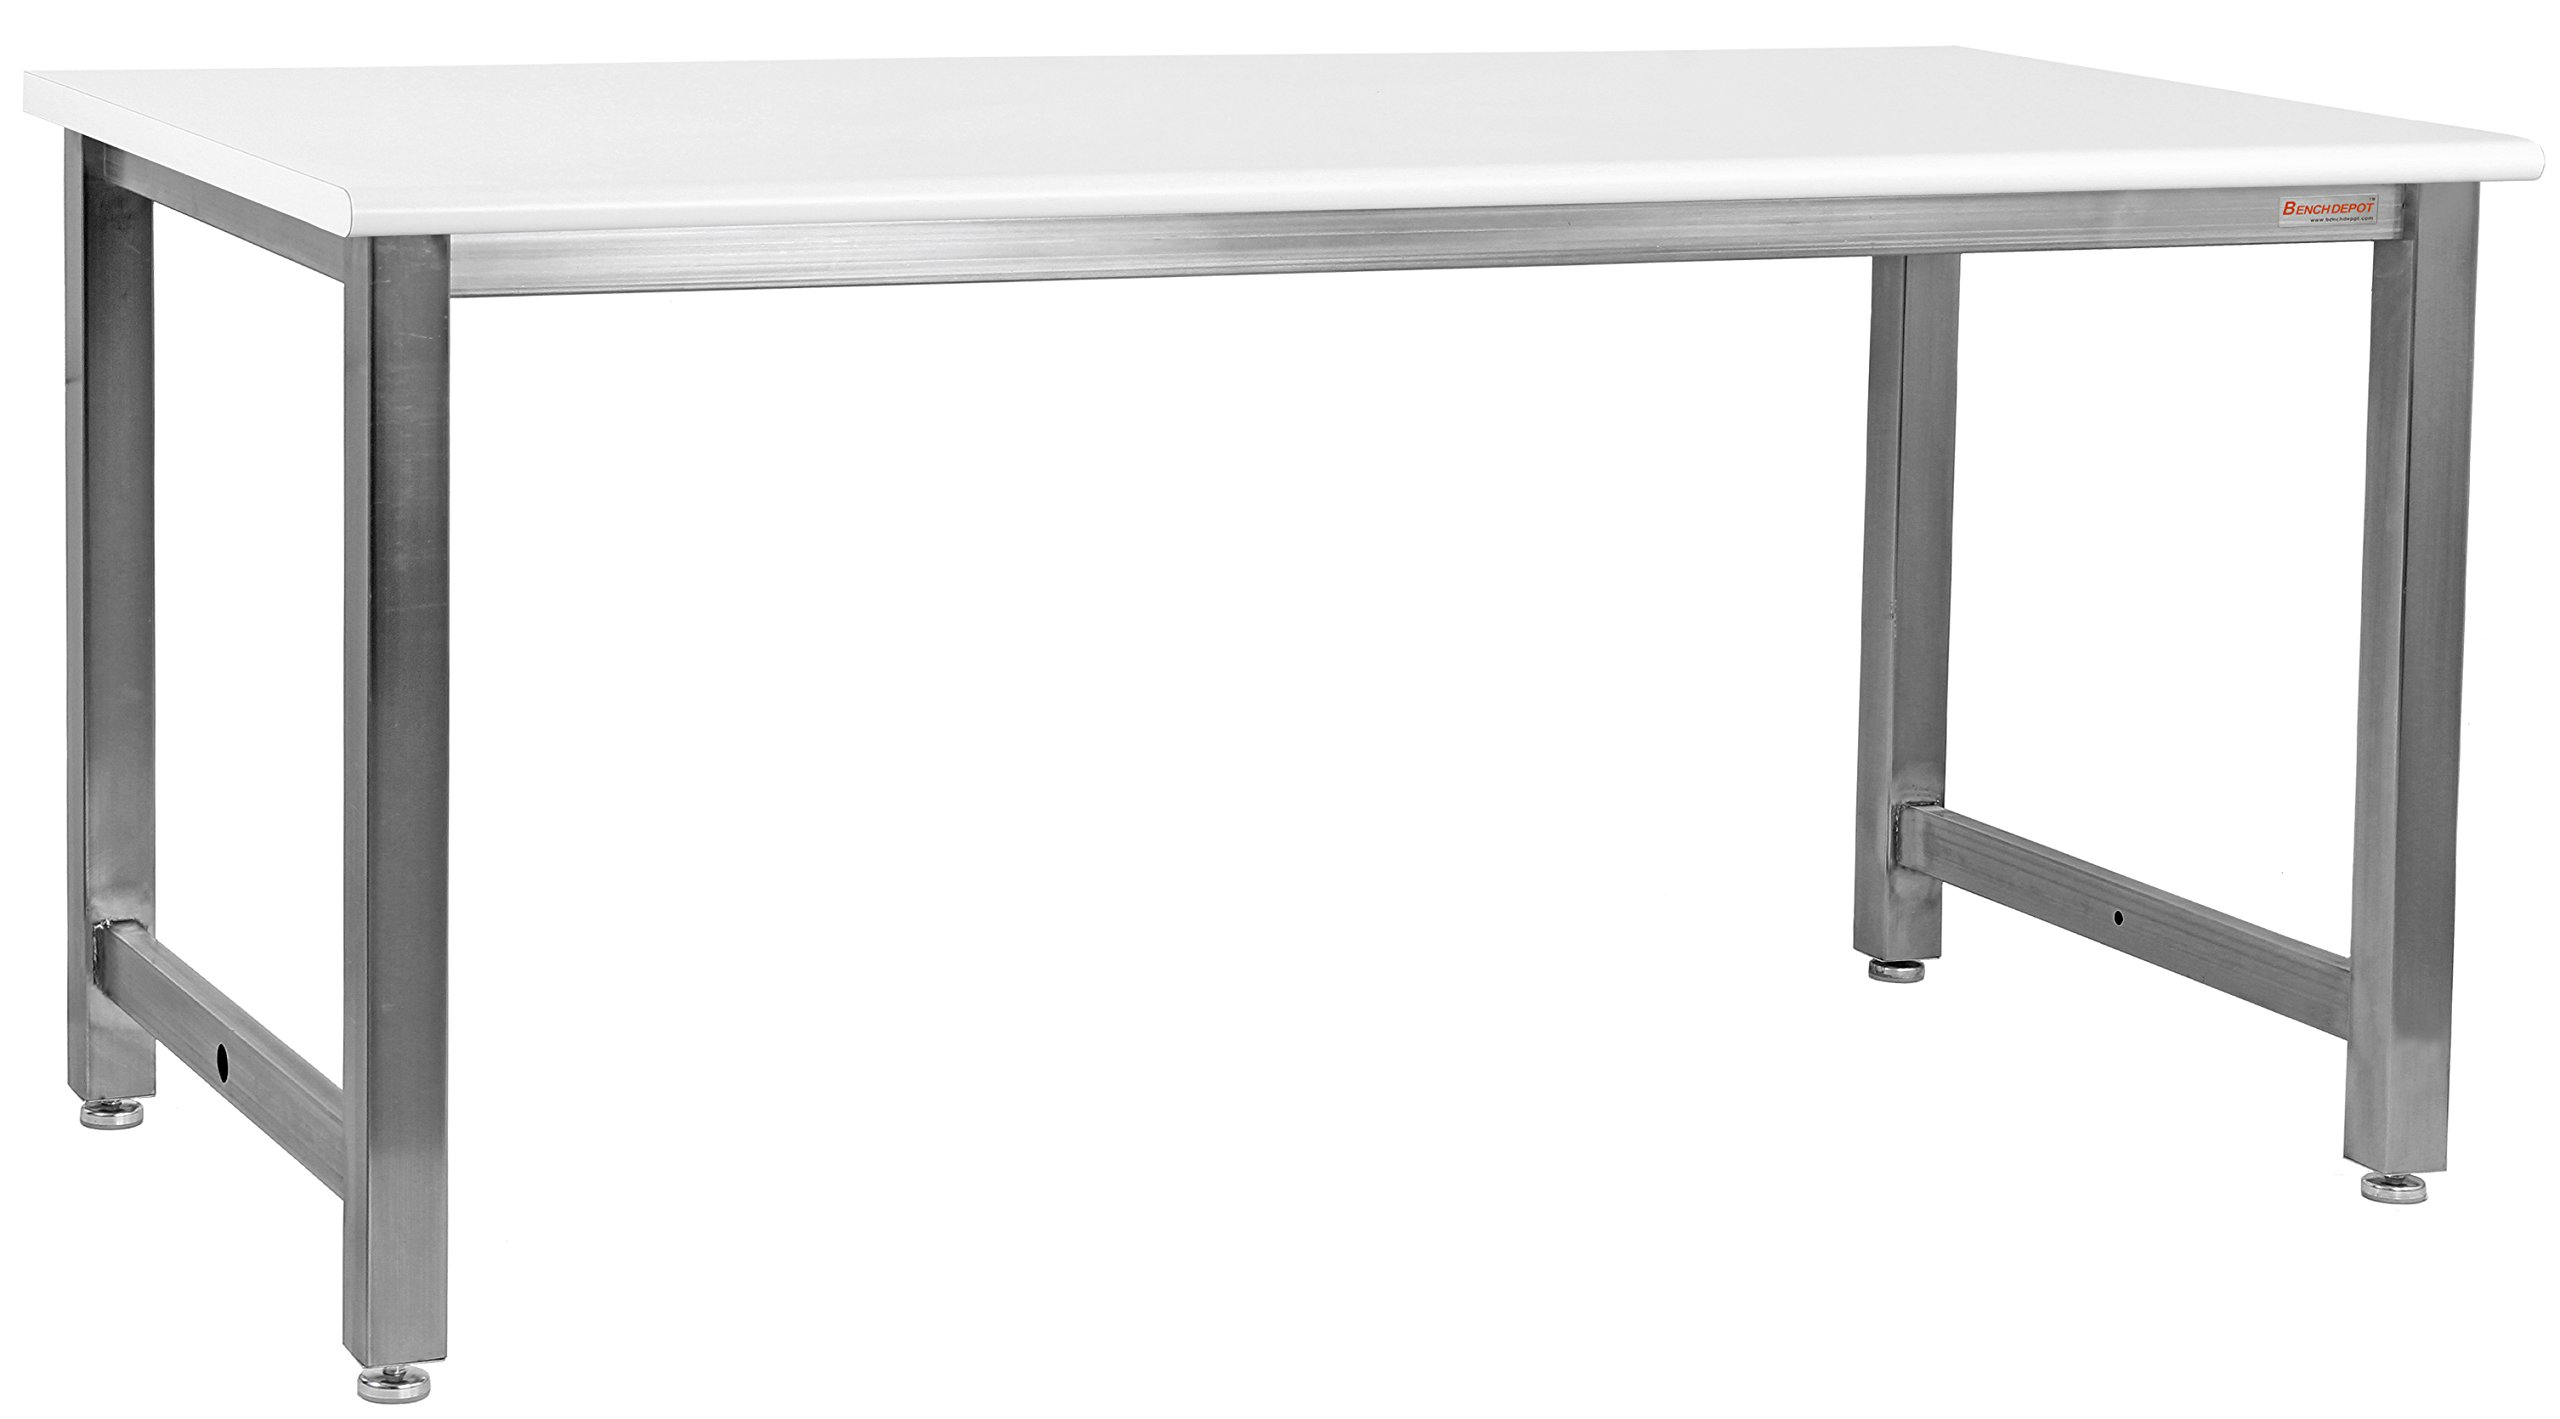 BenchPro KSDCR3060 Kennedy Workbench with Stainless Steel Frame and Cleanroom Lisstat Esd Laminate Top